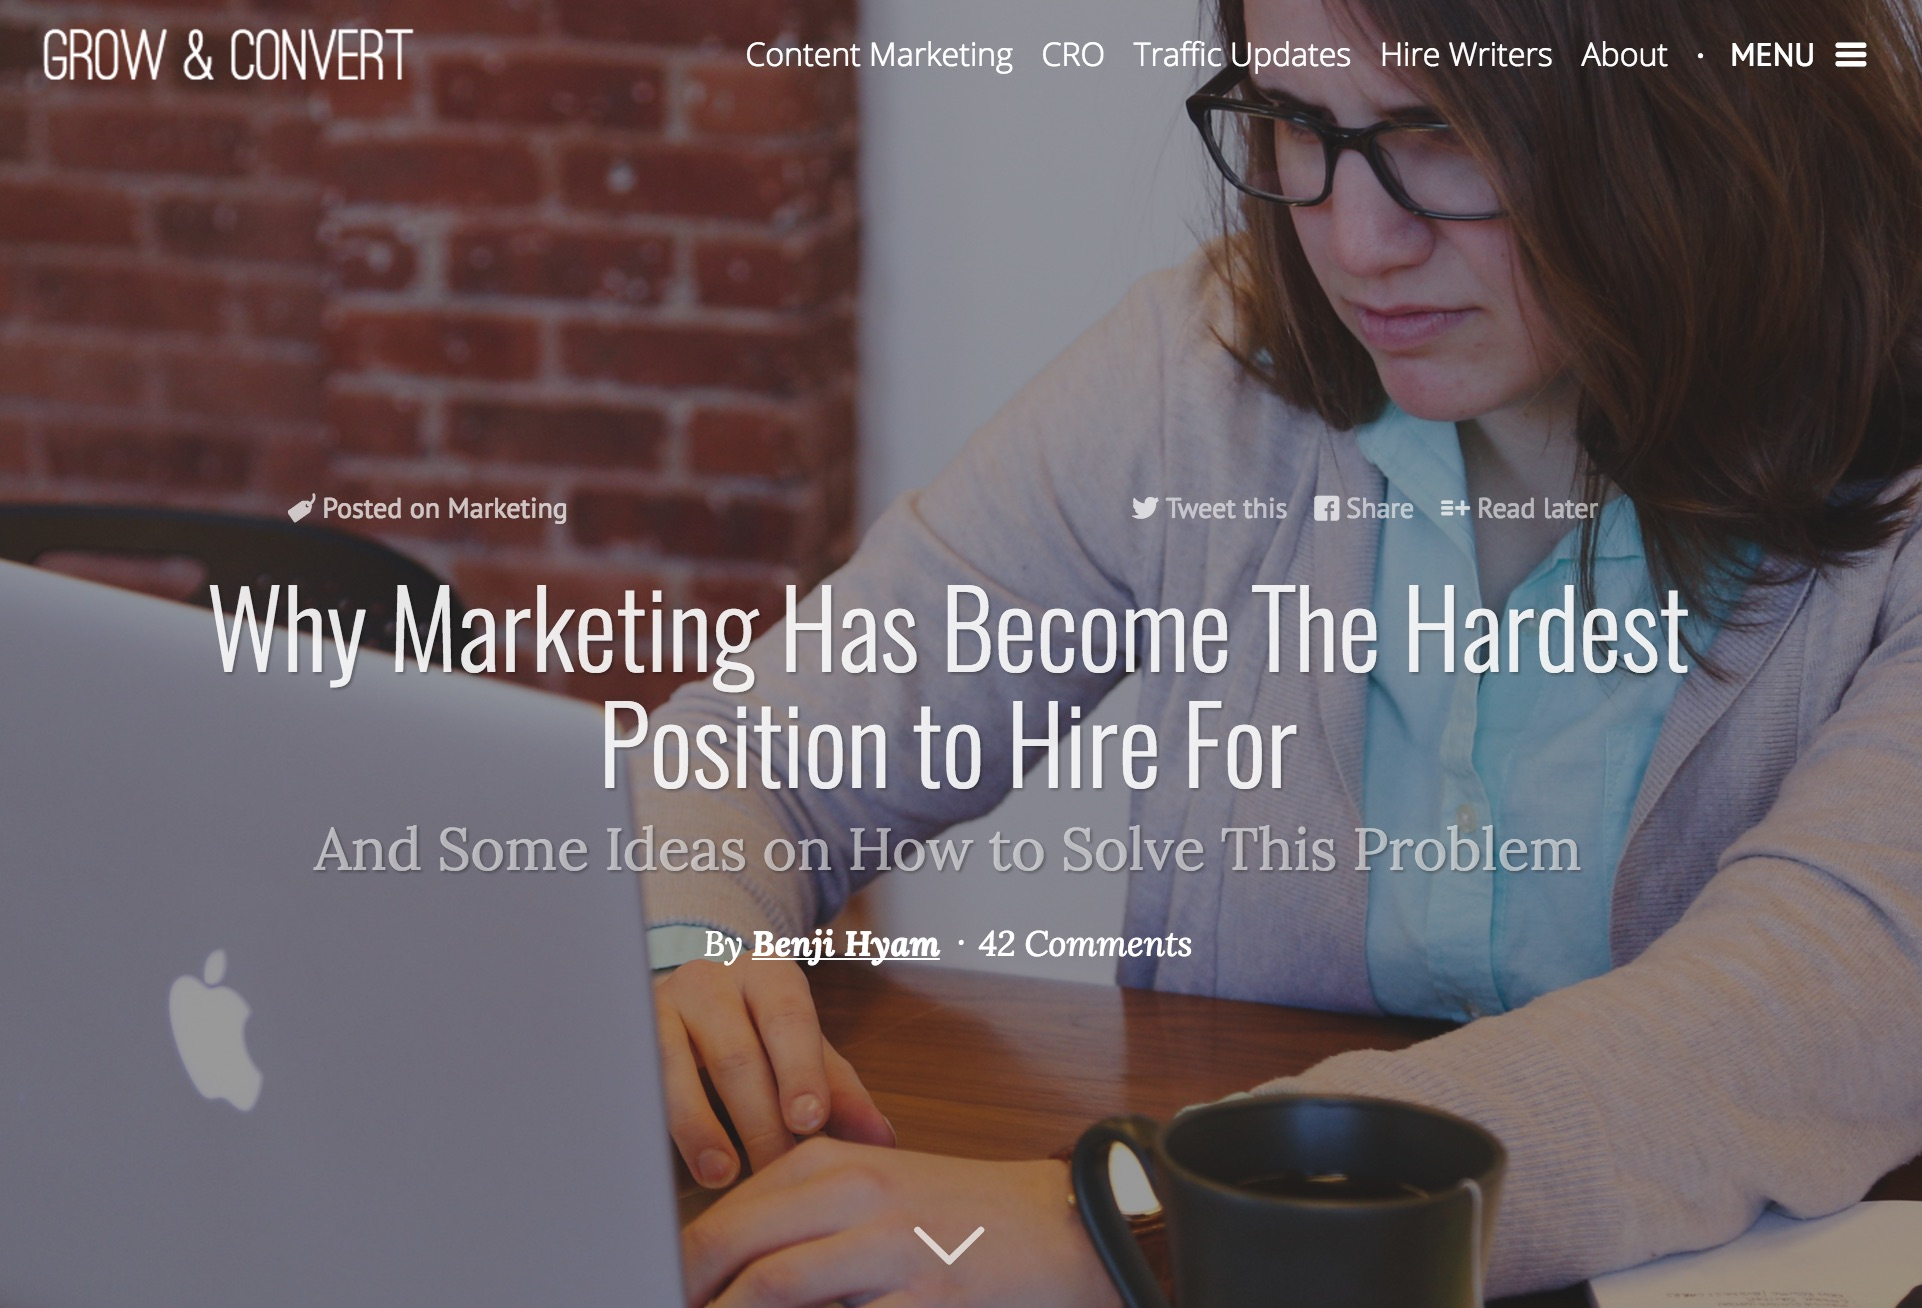 Why_Marketing_Has_Become_The_Hardest_Position_to_Hire_For